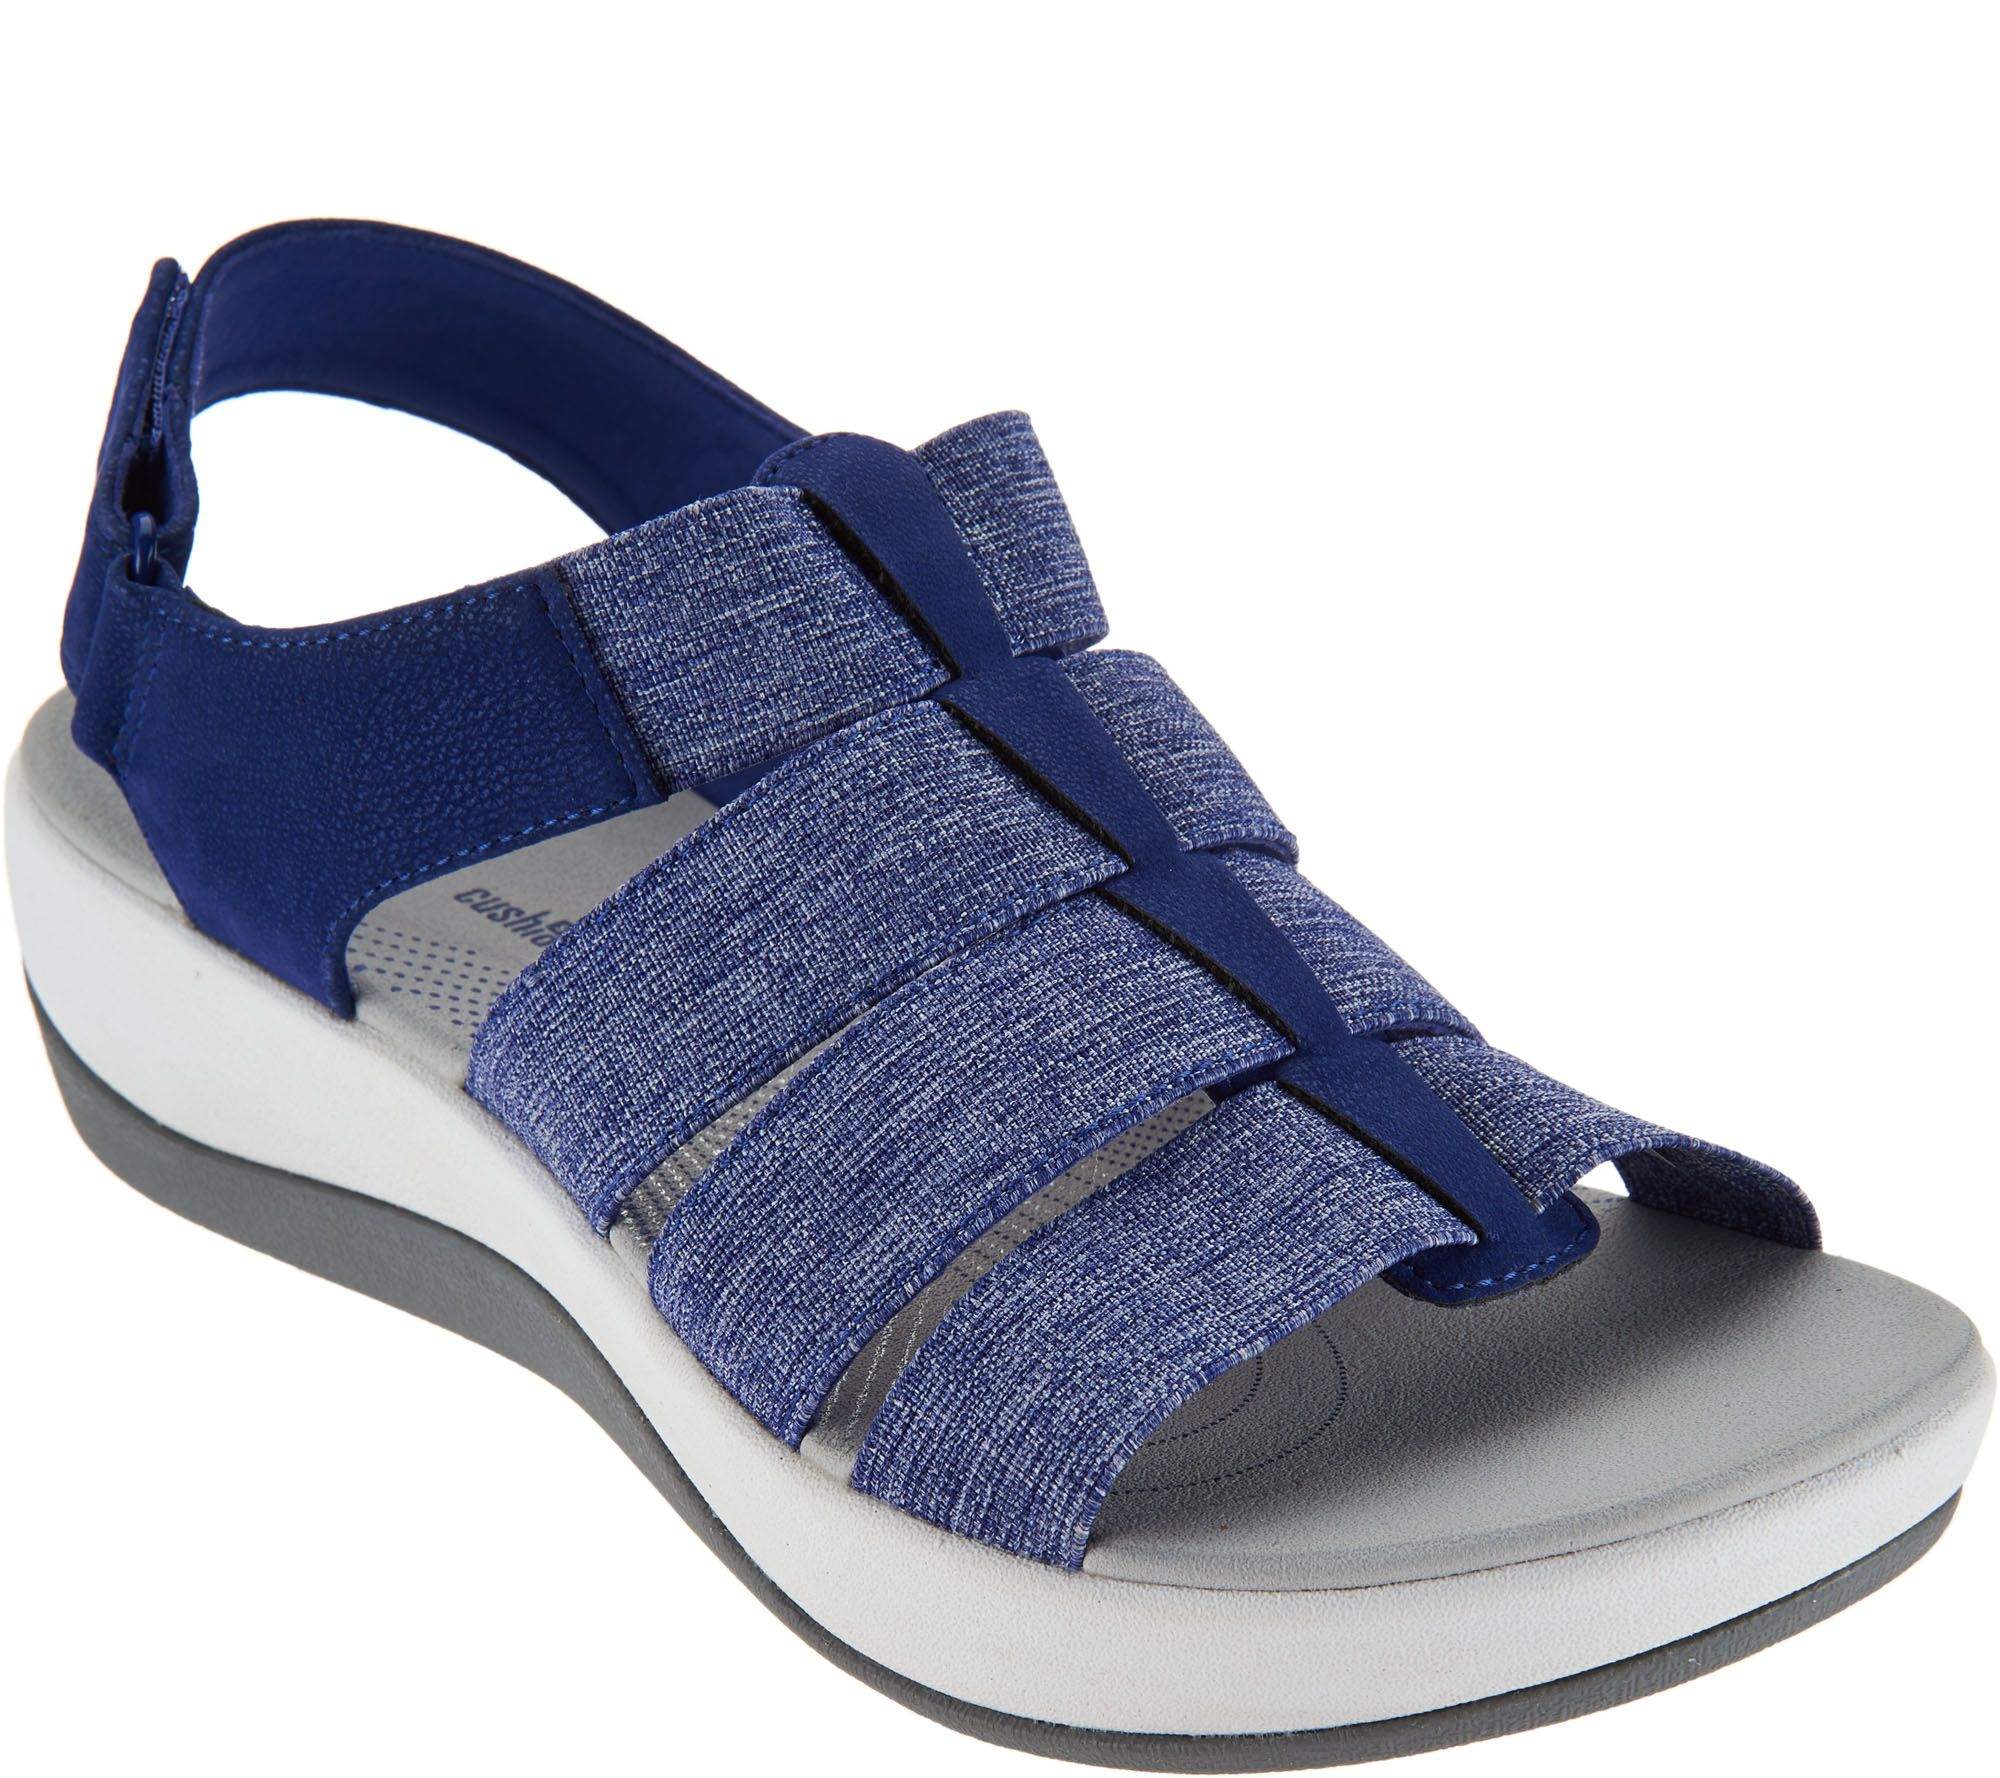 most reliable cheap for discount large assortment CLOUDSTEPPERS by Clarks Sport Sandals - Arla Shaylie — QVC.com